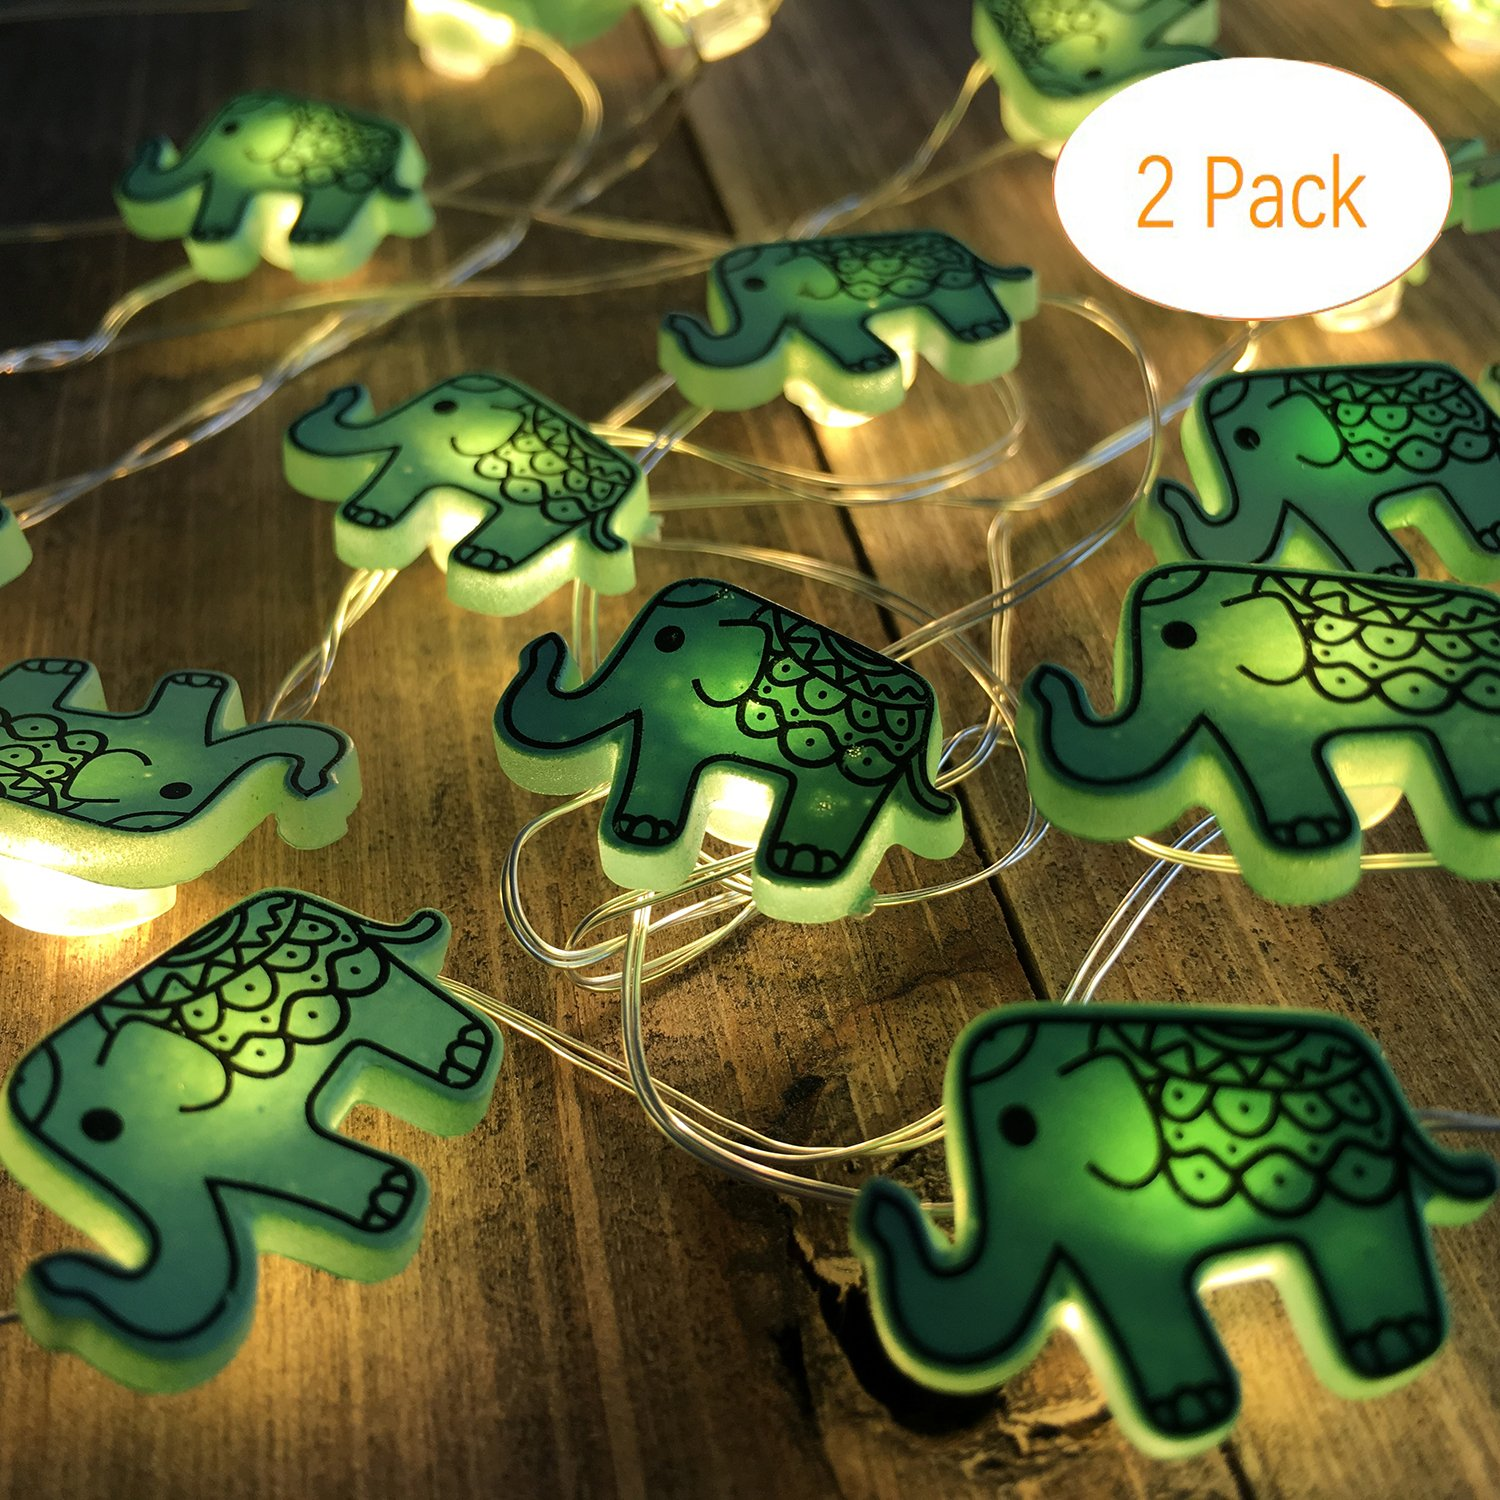 Animal Novelty Lights String Battery Operated with Timer Control 20 Micro LED Wire Lights Waterproof 2 Pack Elephant String Lights for Home Decoration,Kids Bedroom,Christmas,Holiday,(ELE2) by VagaryLight (Image #1)